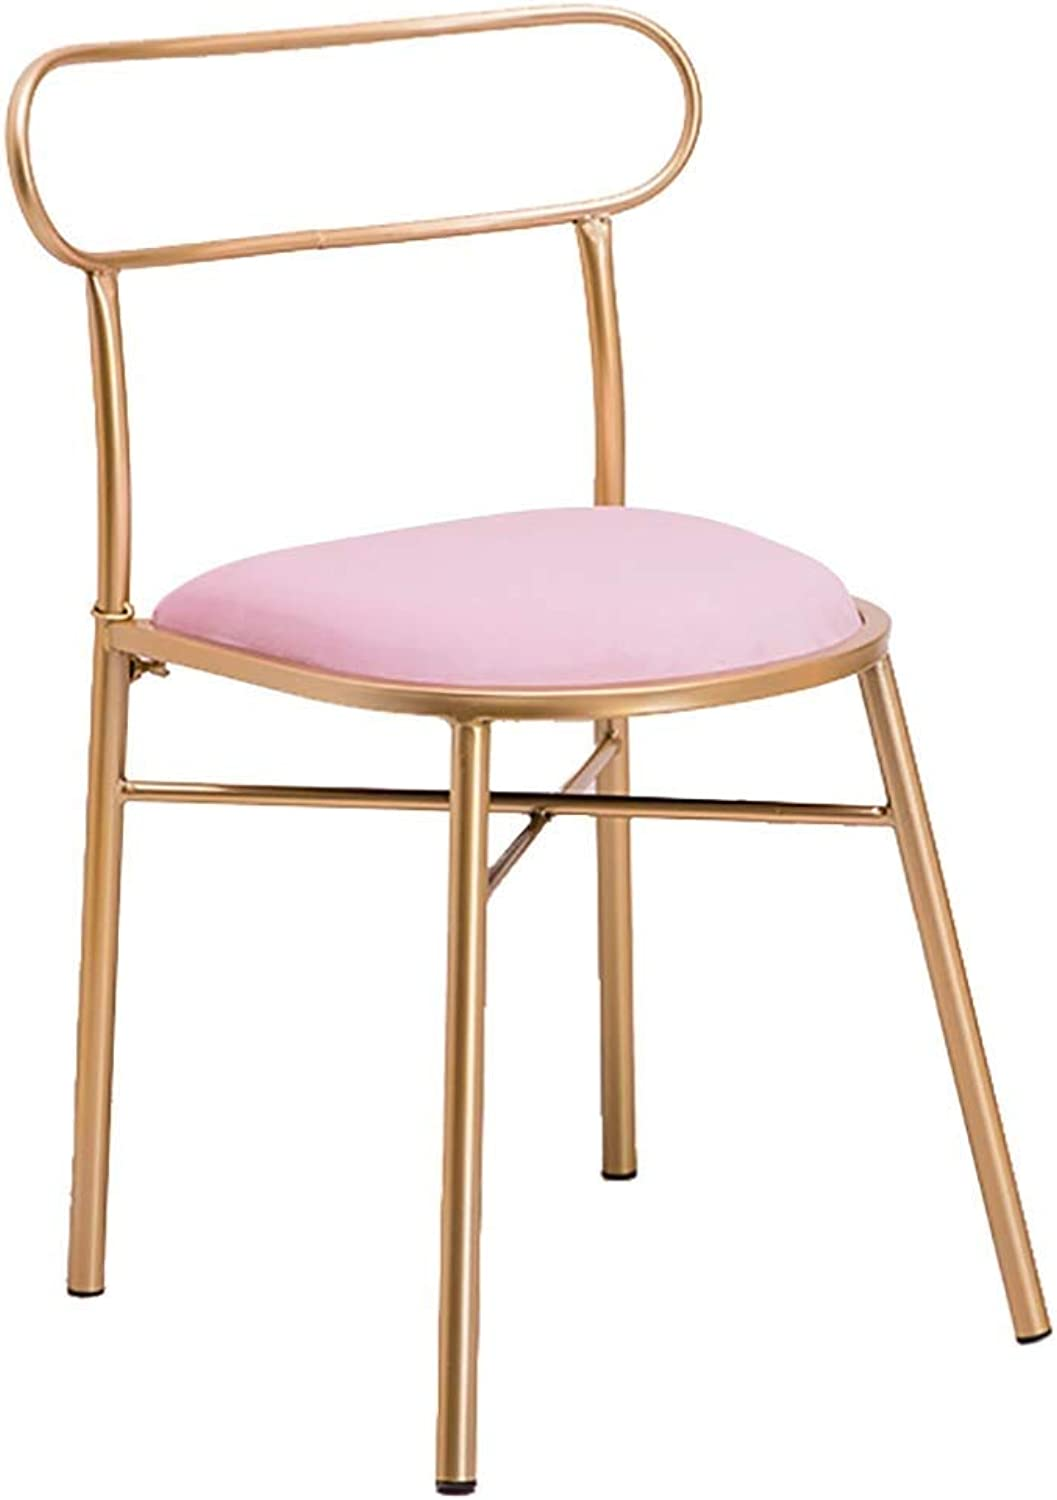 golden Dining Chair Lounge Chair Designer Dressing Table Chair Makeup Stool Curved Backrest Wrought Iron Chair Comfortable Sedentary Suitable For Restaurants offices counters families cafes restaurant